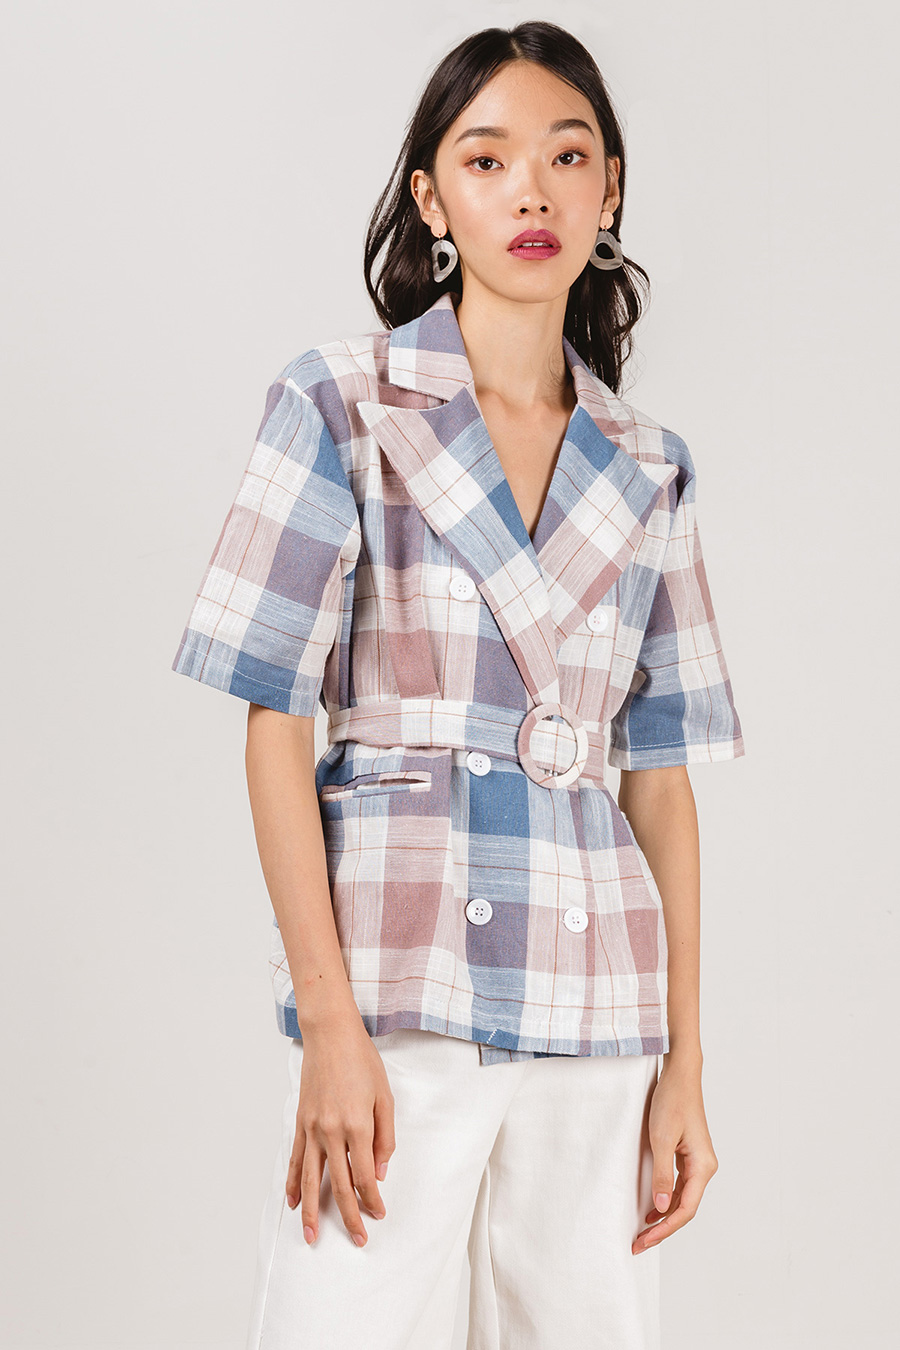 CELINE TOP - GLAUCOUS CHECK